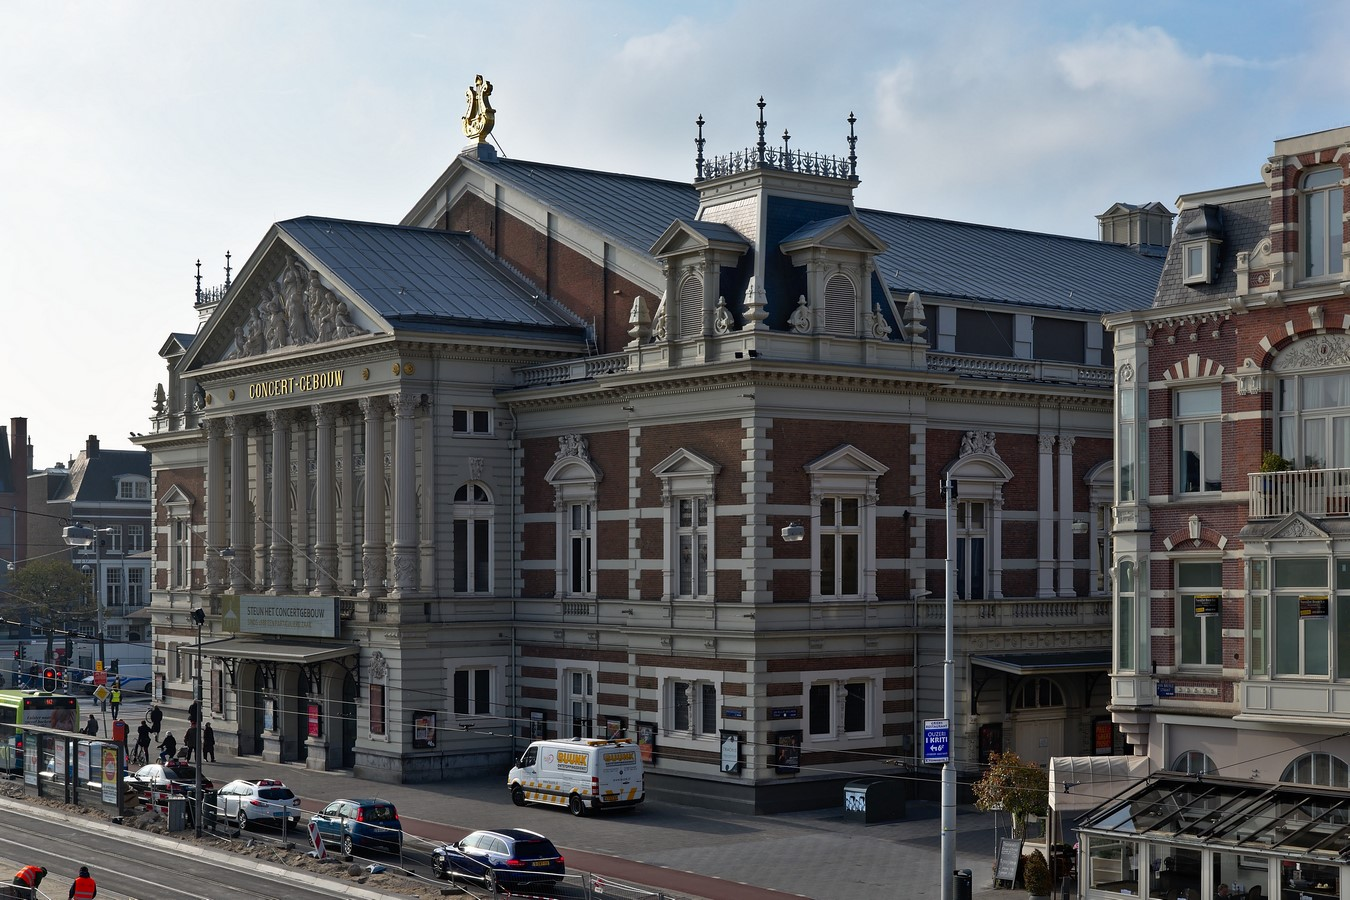 Concertgebouw in Amsterdam, Netherlands Applying acoustics without science - Sheet4